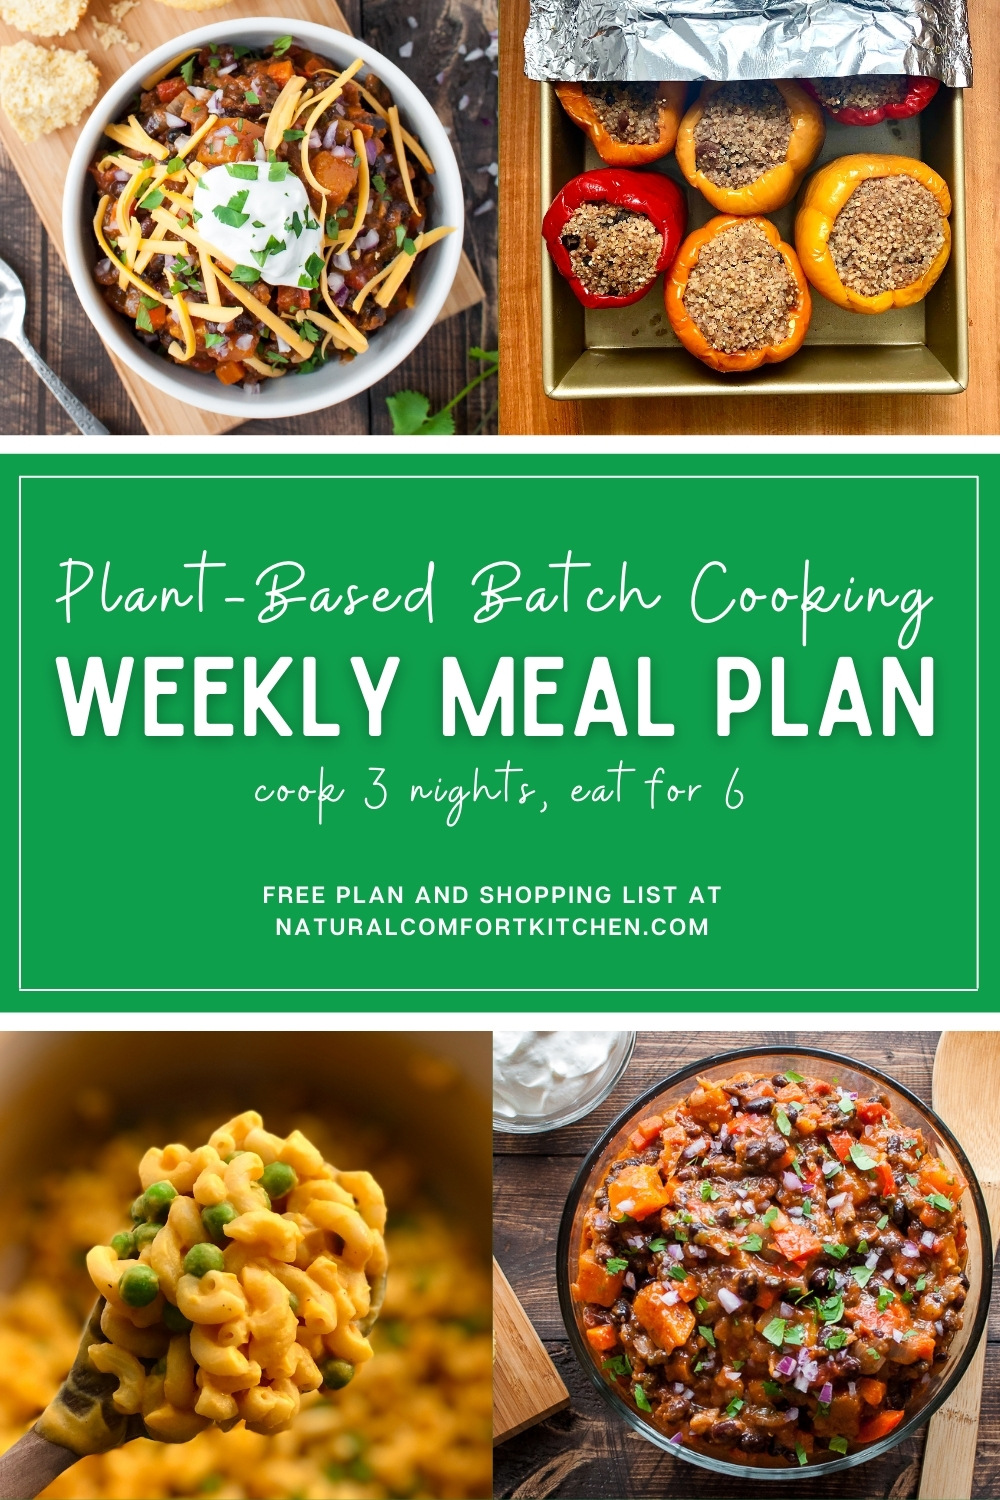 FREE plant-based, batch cooking weekly meal plan to cook for 3 nights and eat for 6. Download it now at naturalcomfortkitchen.com